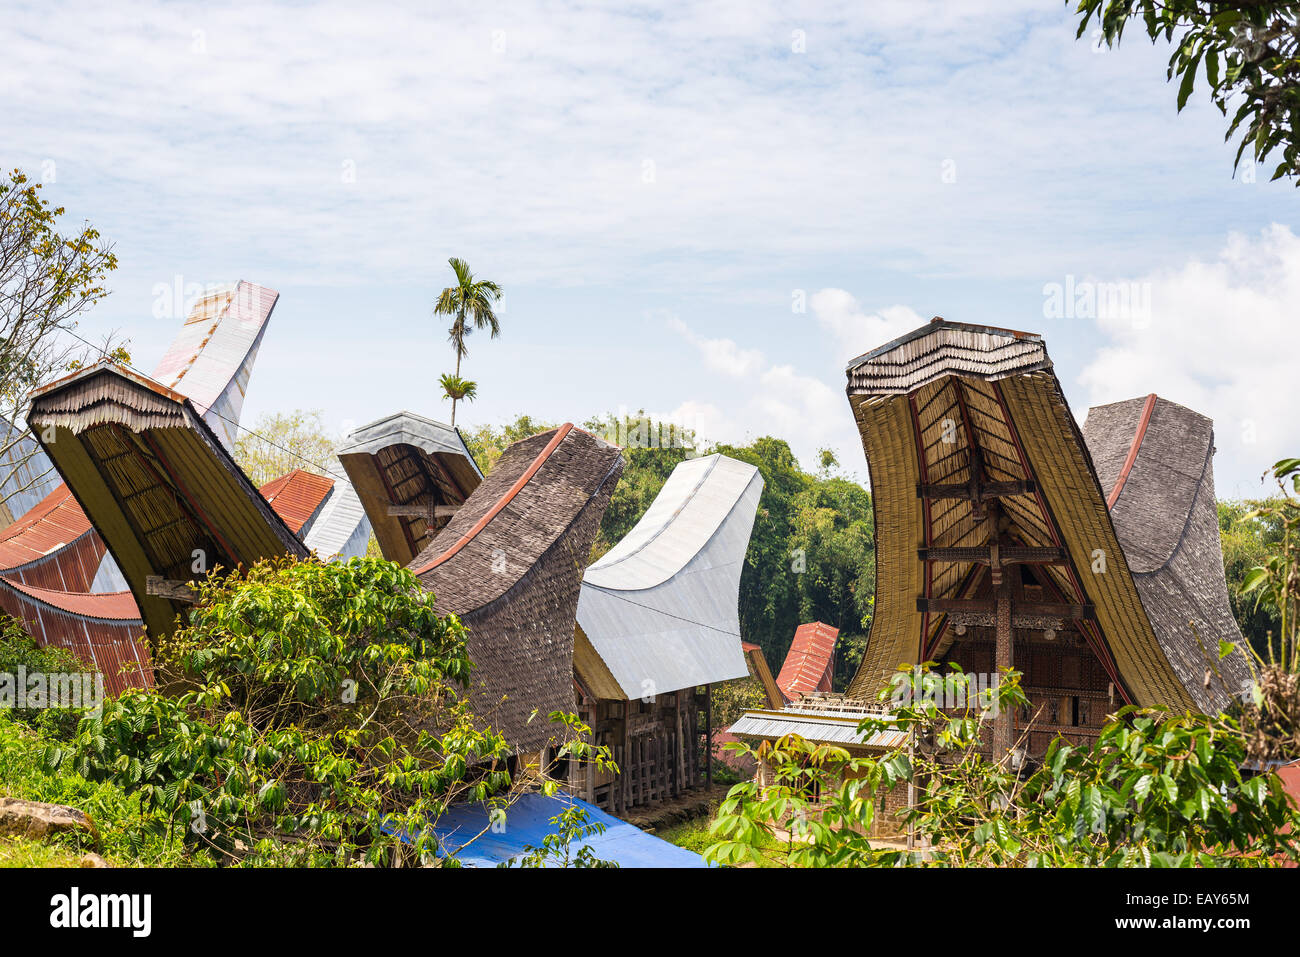 Traditional village of residential buildings with decorated facade and boat shaped roofs. Tana Toraja, South Sulawesi, Stock Photo